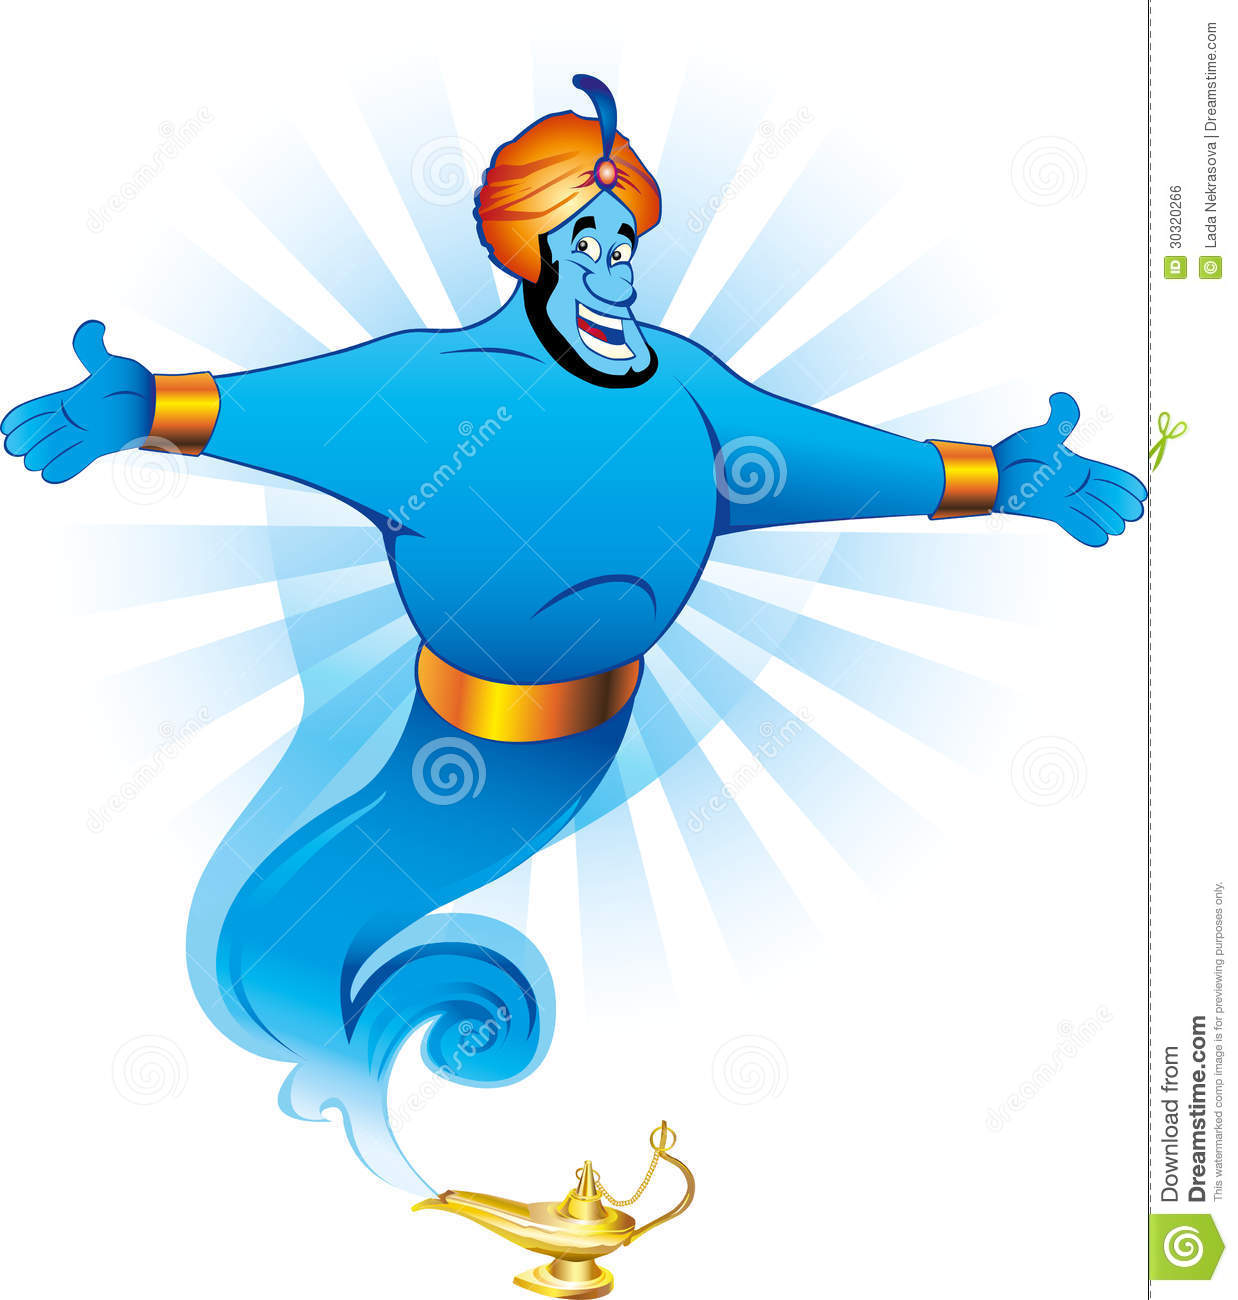 Illustration Of Magic Genie Appear From Magic Lamp